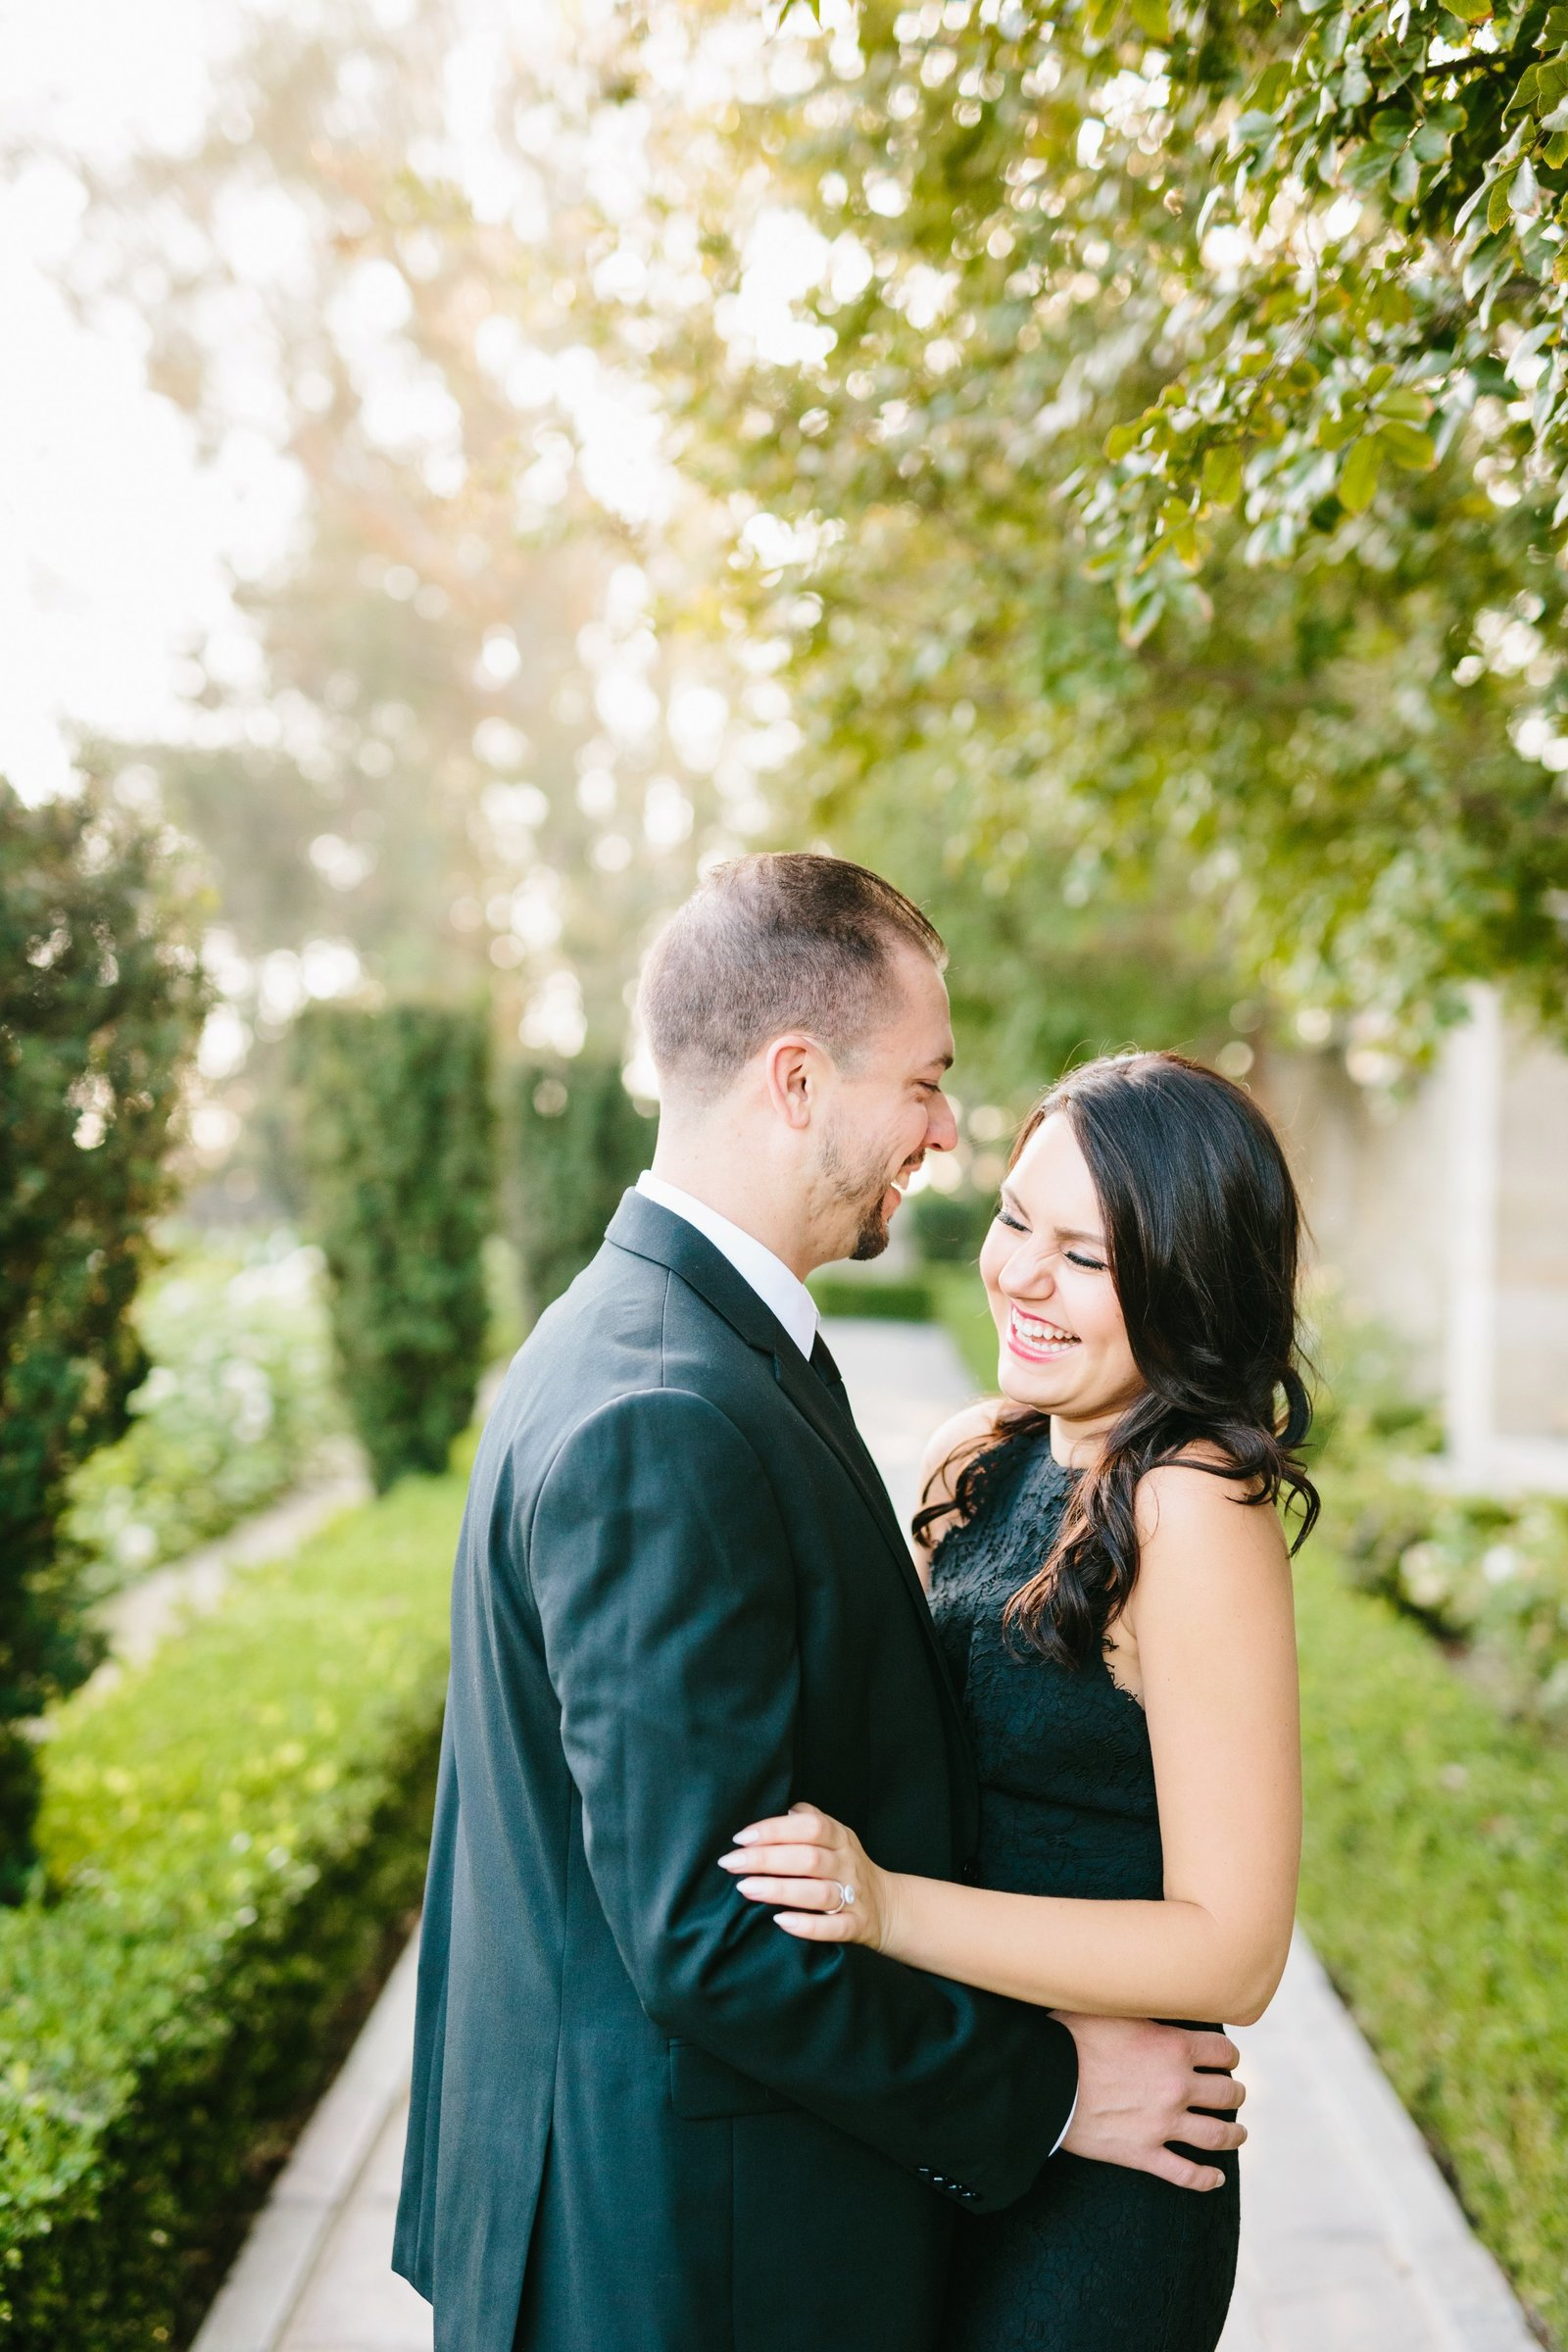 Cezara & Matt-Jodee Debes Photography-6